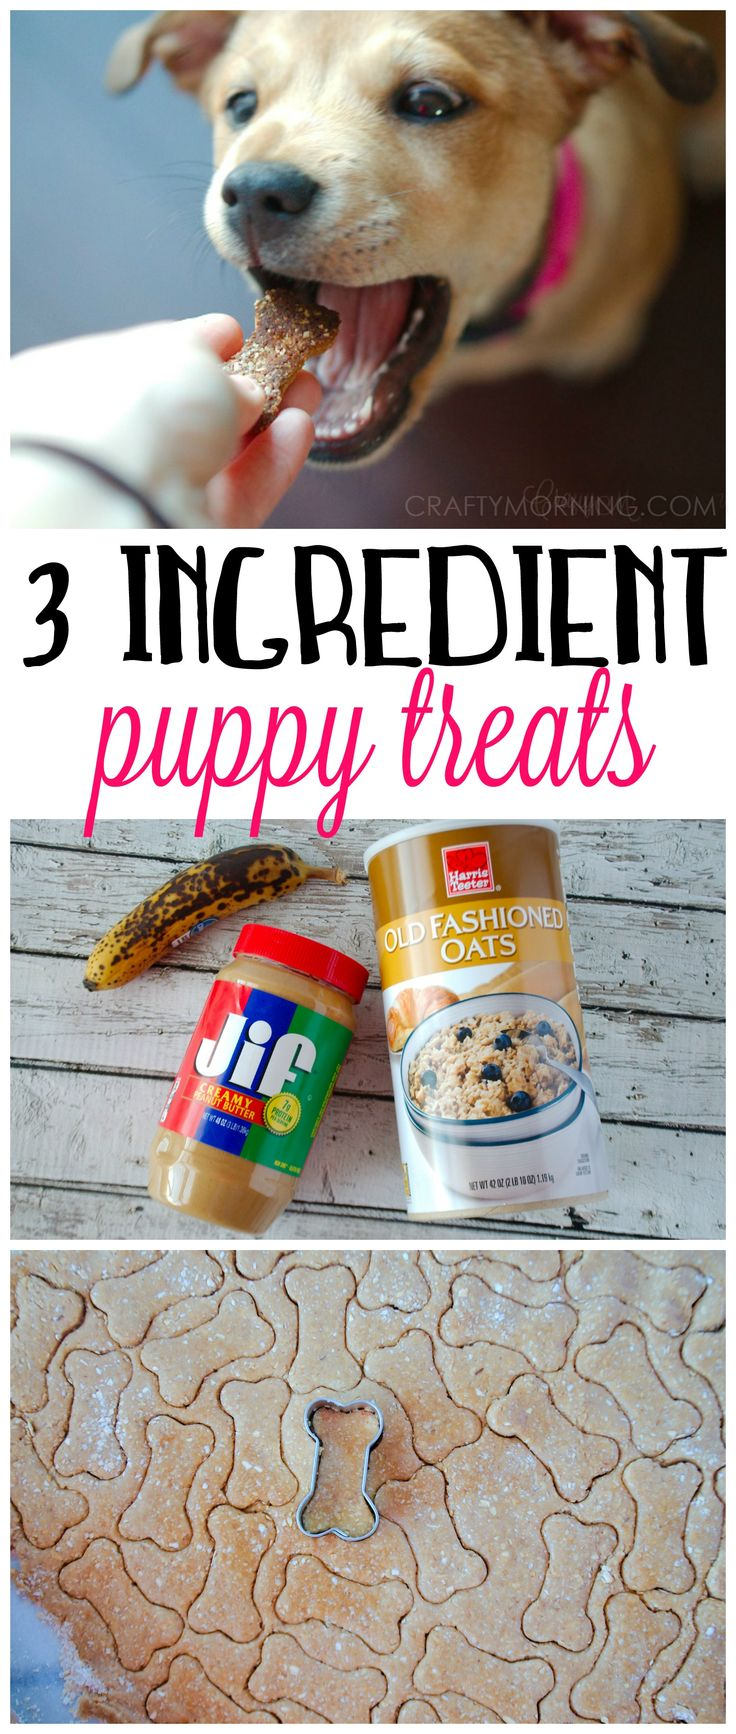 This 3 ingredient puppy treat recipe was a HIT with my dog!! They used peanut butter, banana, and oats. A healthy alternative.